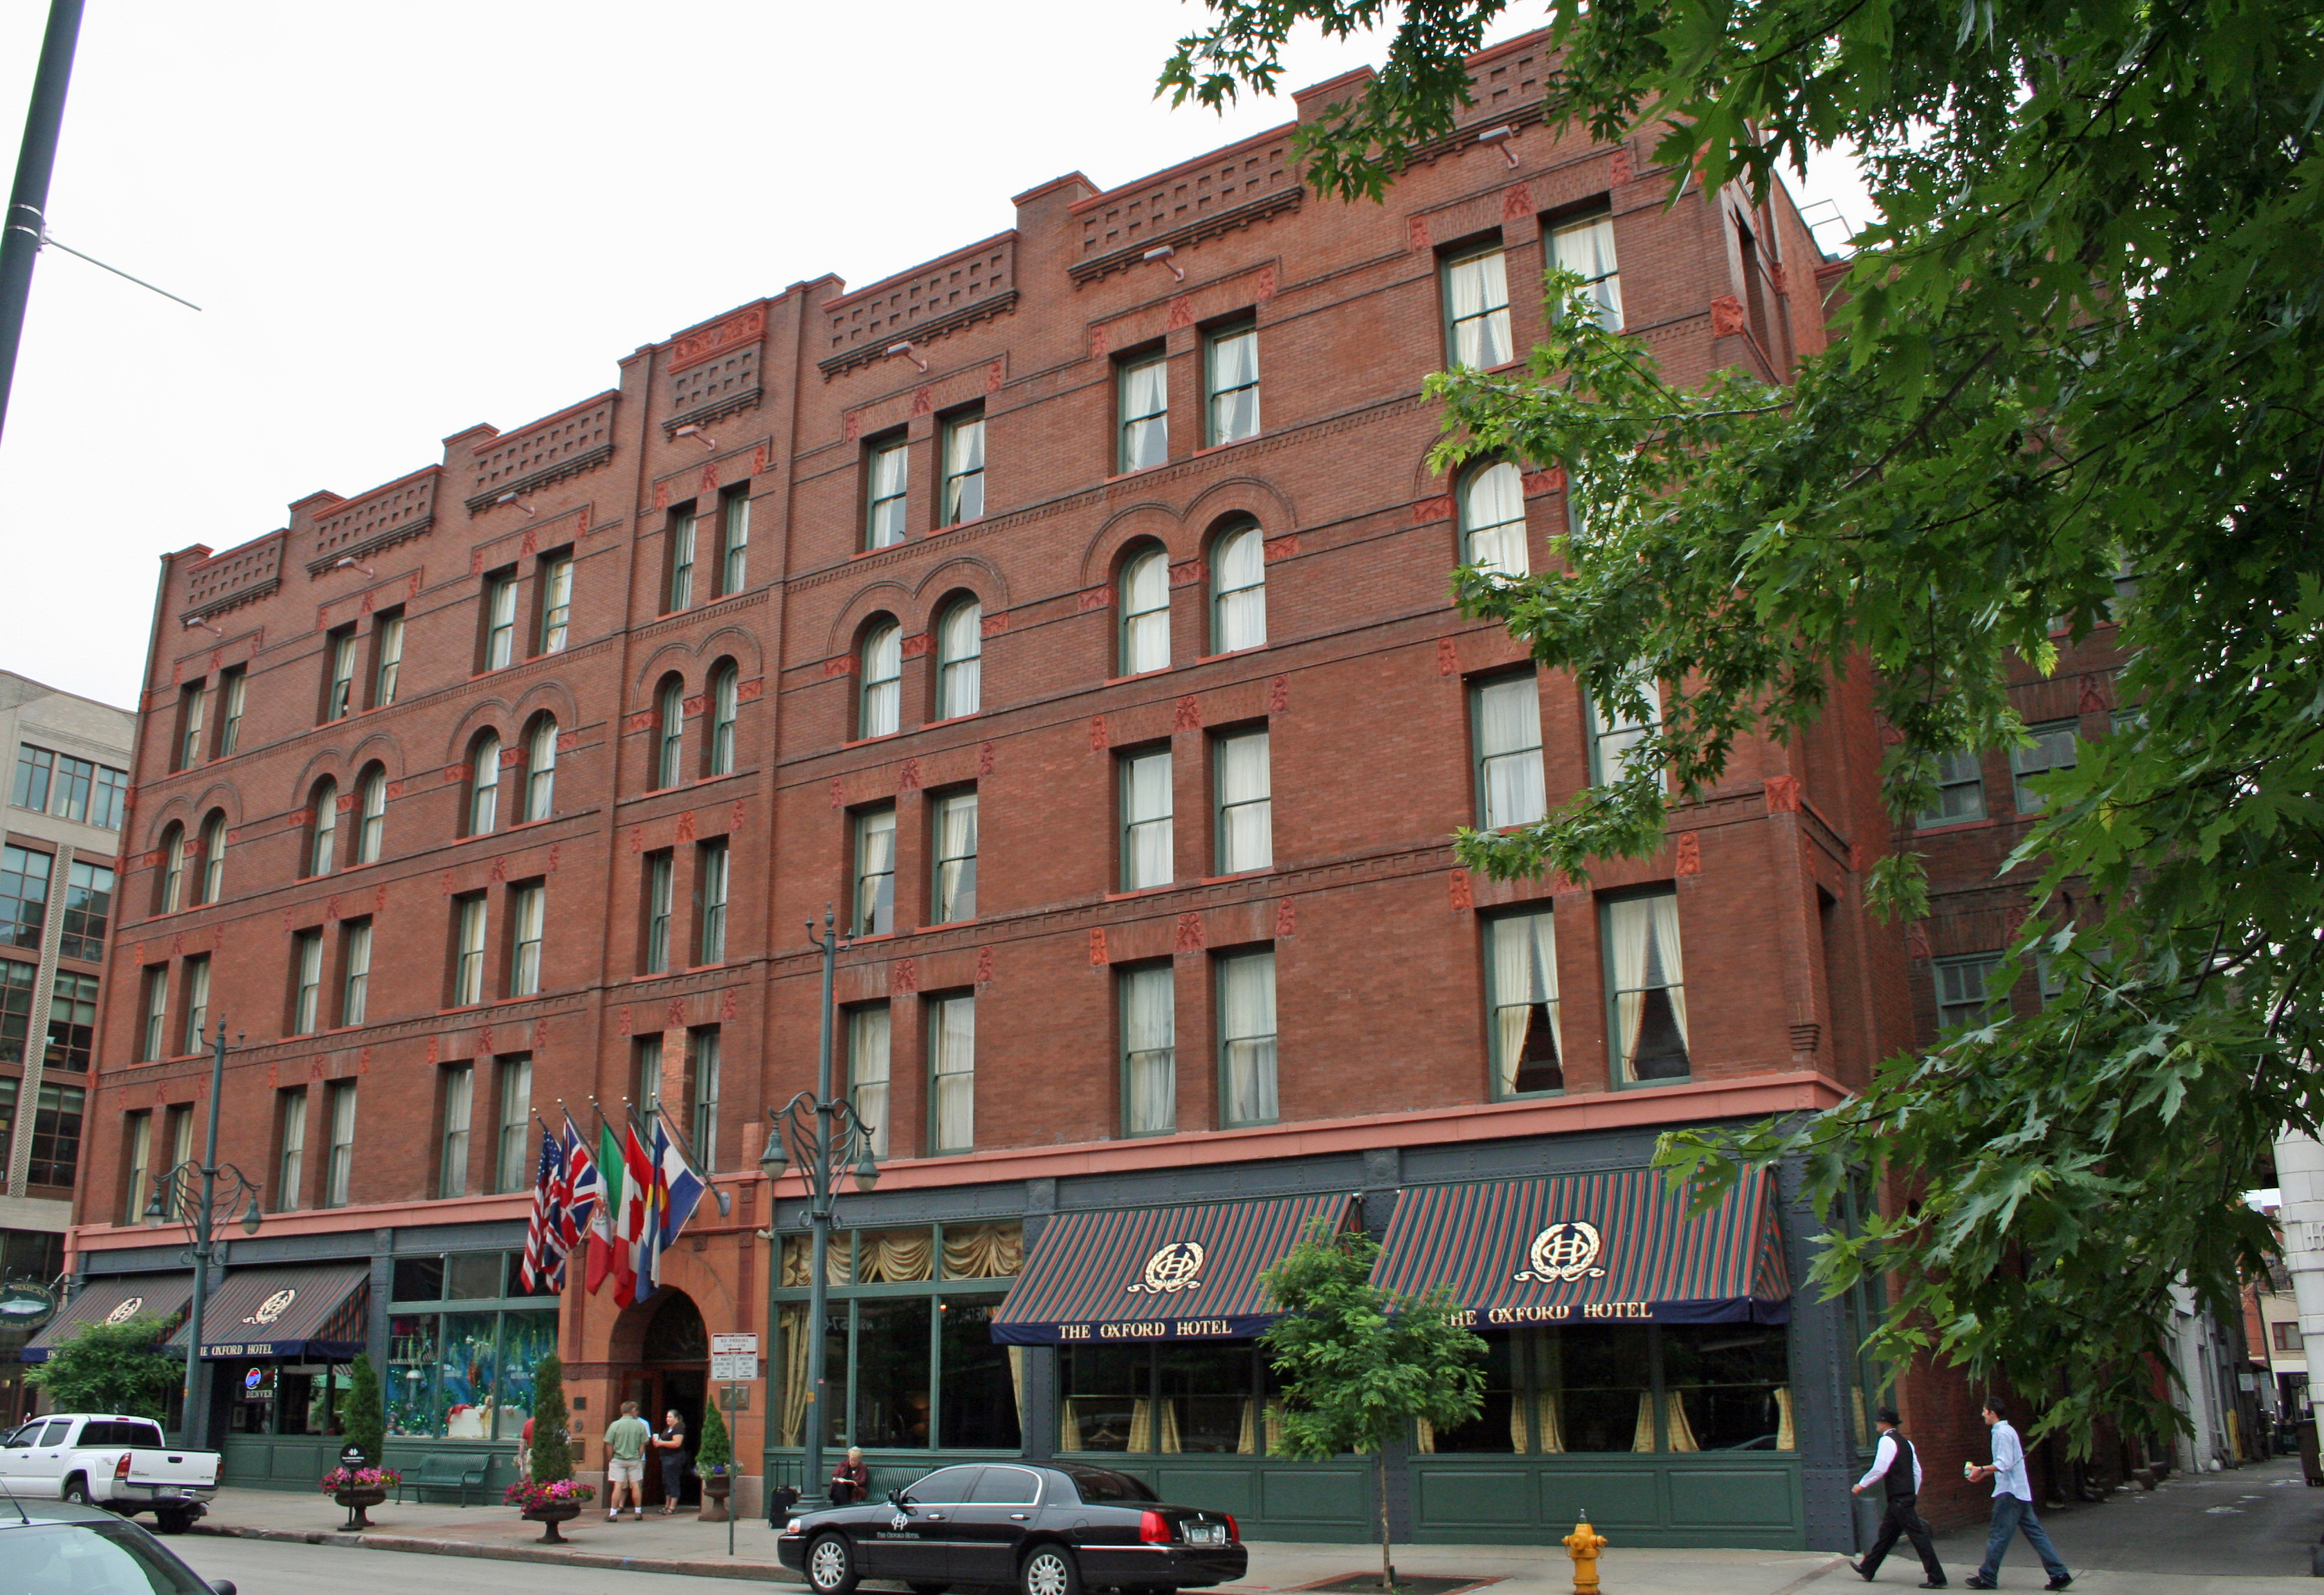 The Oxford Hotel, located at 1612 17th Street ...